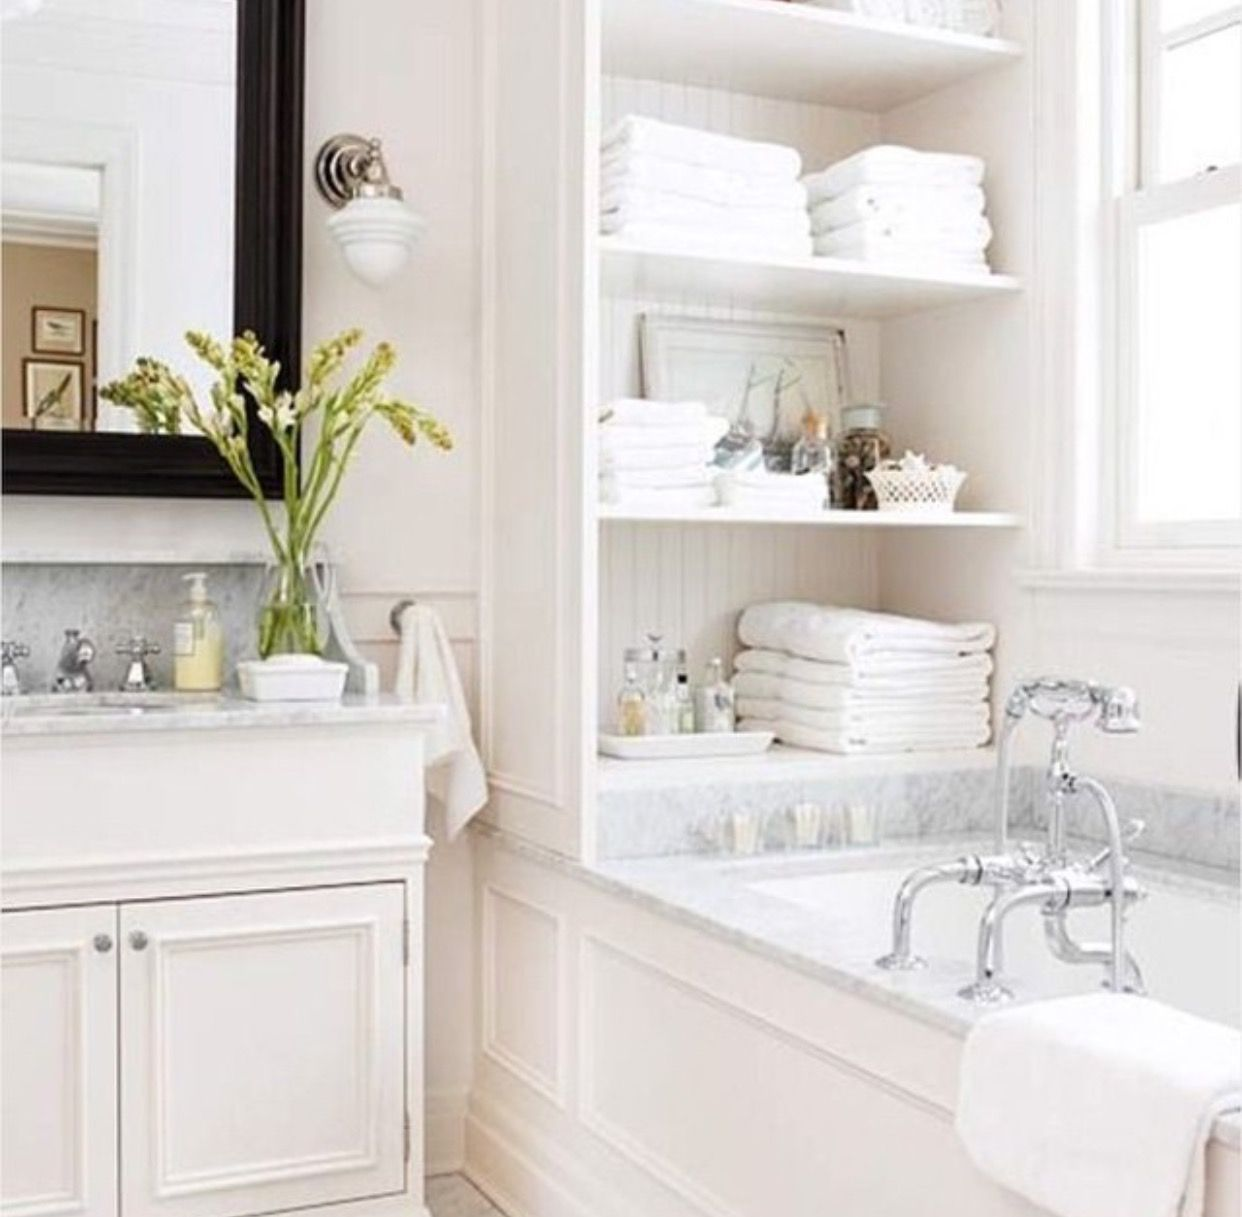 Pin by Barbie Young on bathroom ideas | Pinterest | Bath, Hall and ...